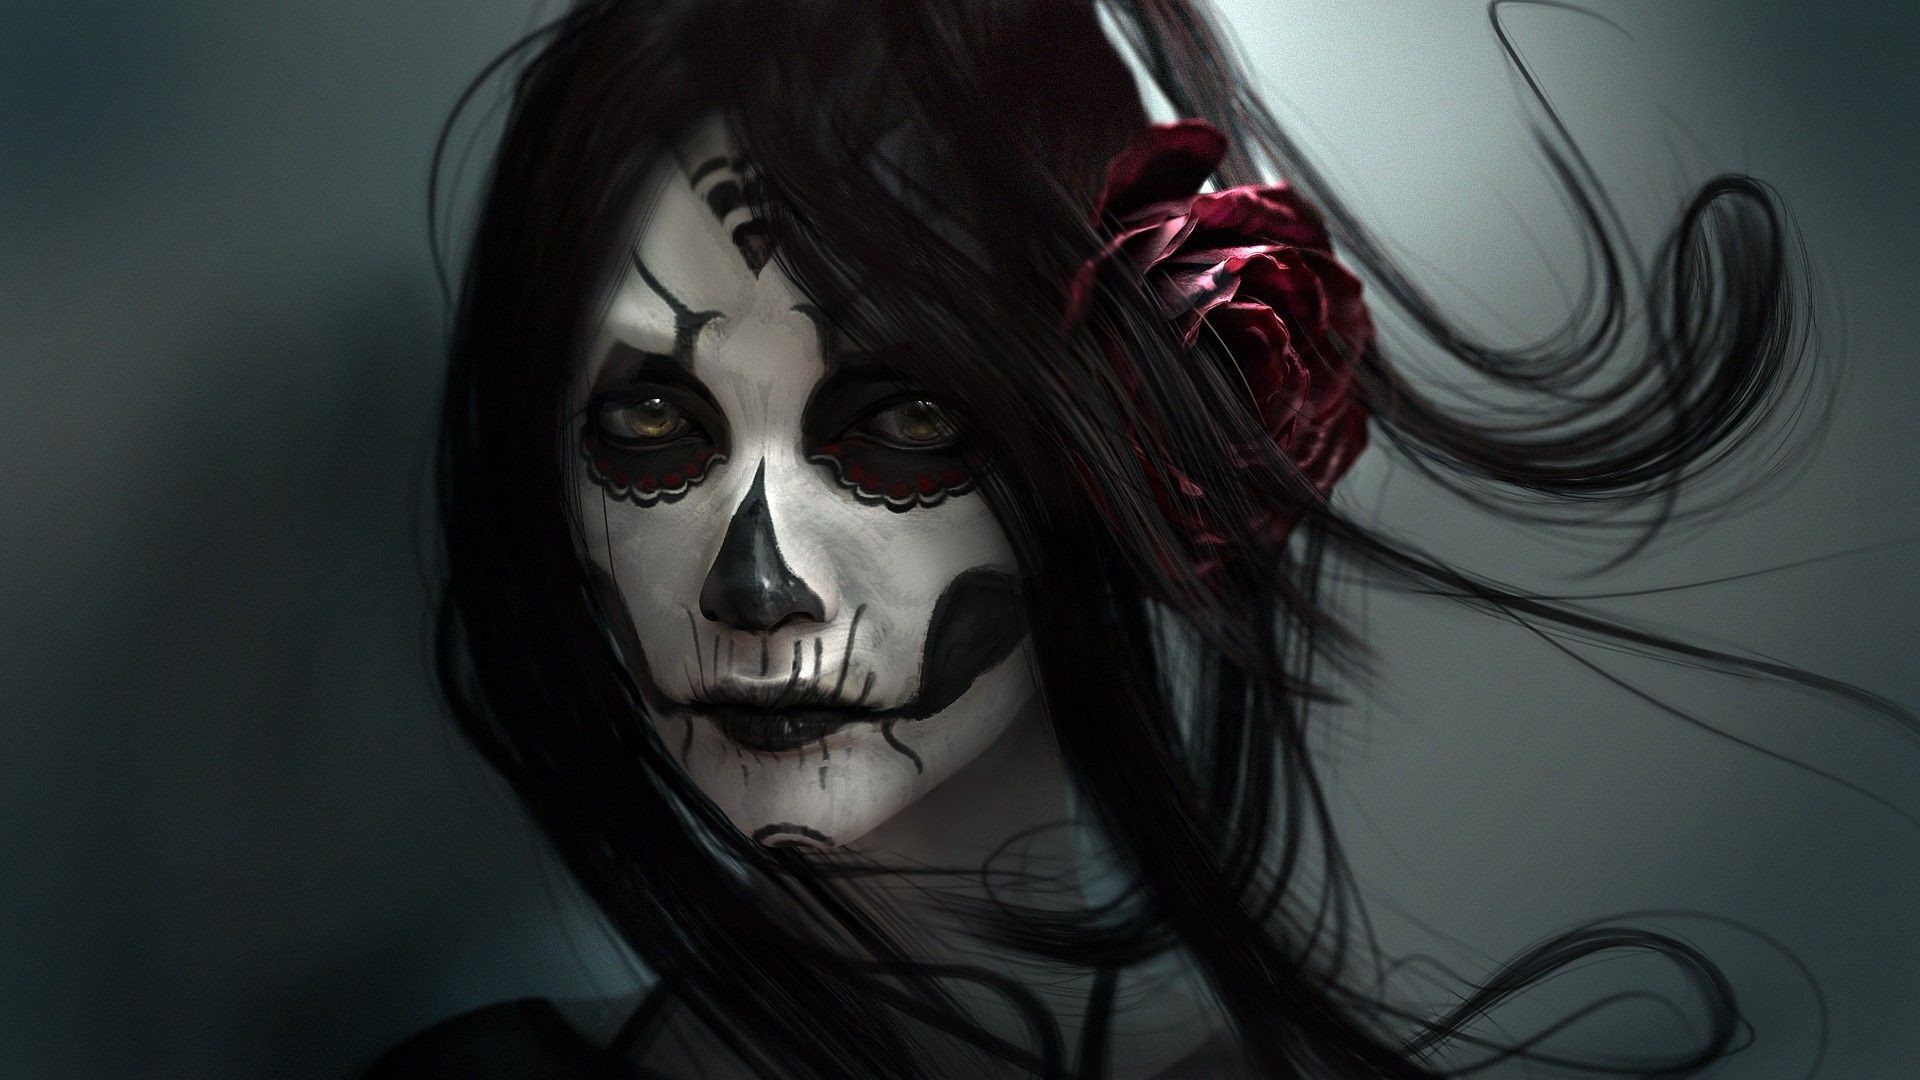 1920x1080 Skull Wallpapers Free Group | HD Wallpapers | Pinterest | Skull wallpaper  and Wallpaper